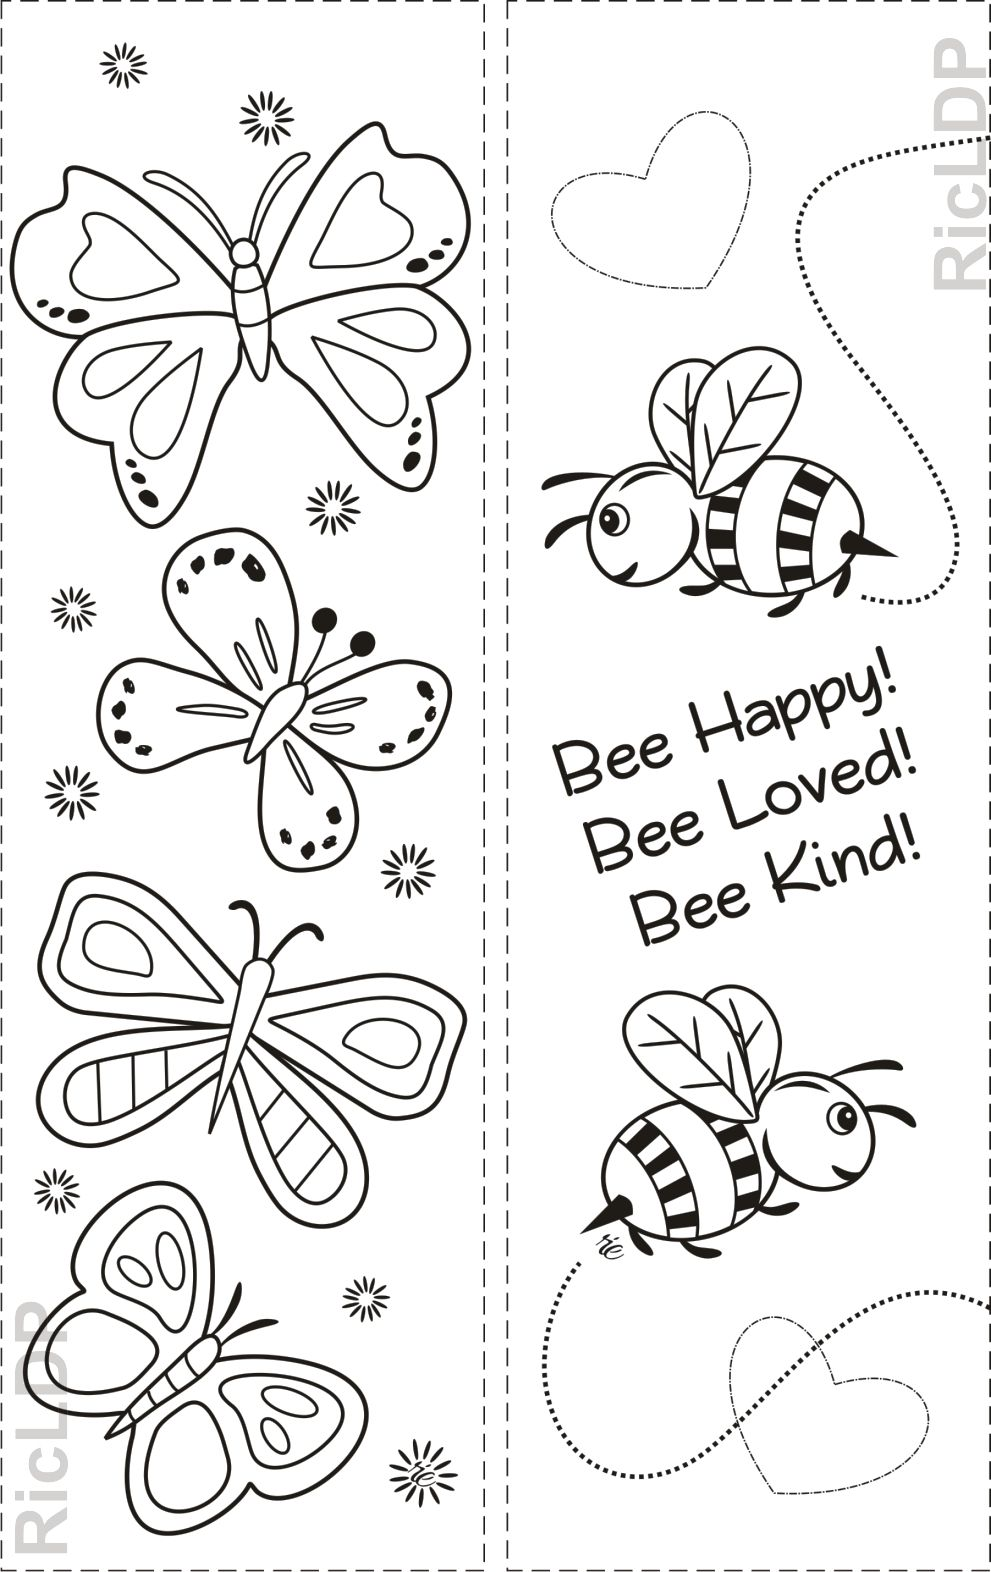 Free Three Coloring Bookmarks With Simple Designs Coloring Bookmarks Coloring Bookmarks Free Butterfly Bookmarks [ 1572 x 991 Pixel ]